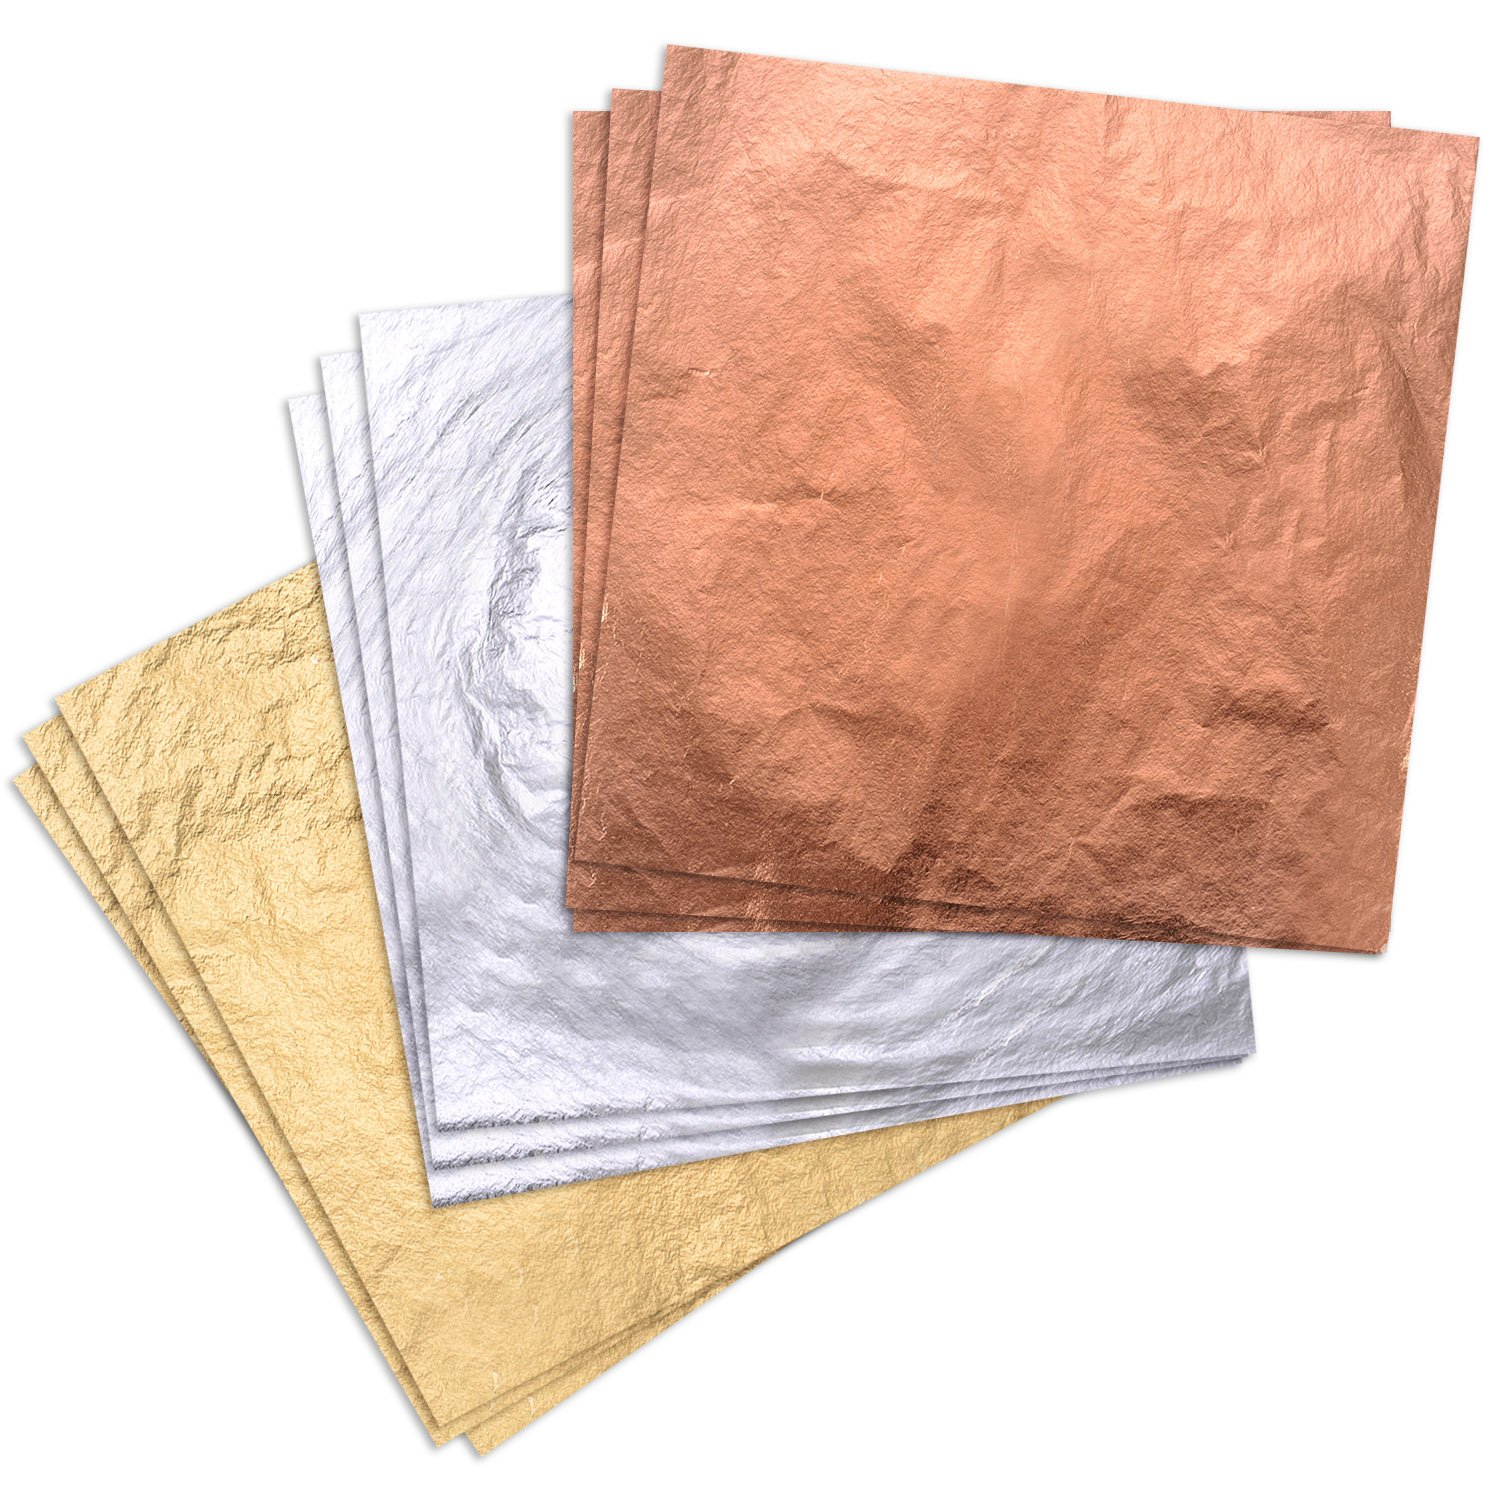 Pangda 300 Pieces Gilding Foil Imitation Gold, Silver and Copper Leaf for DIY Art Crafts Decoration SWEET-797